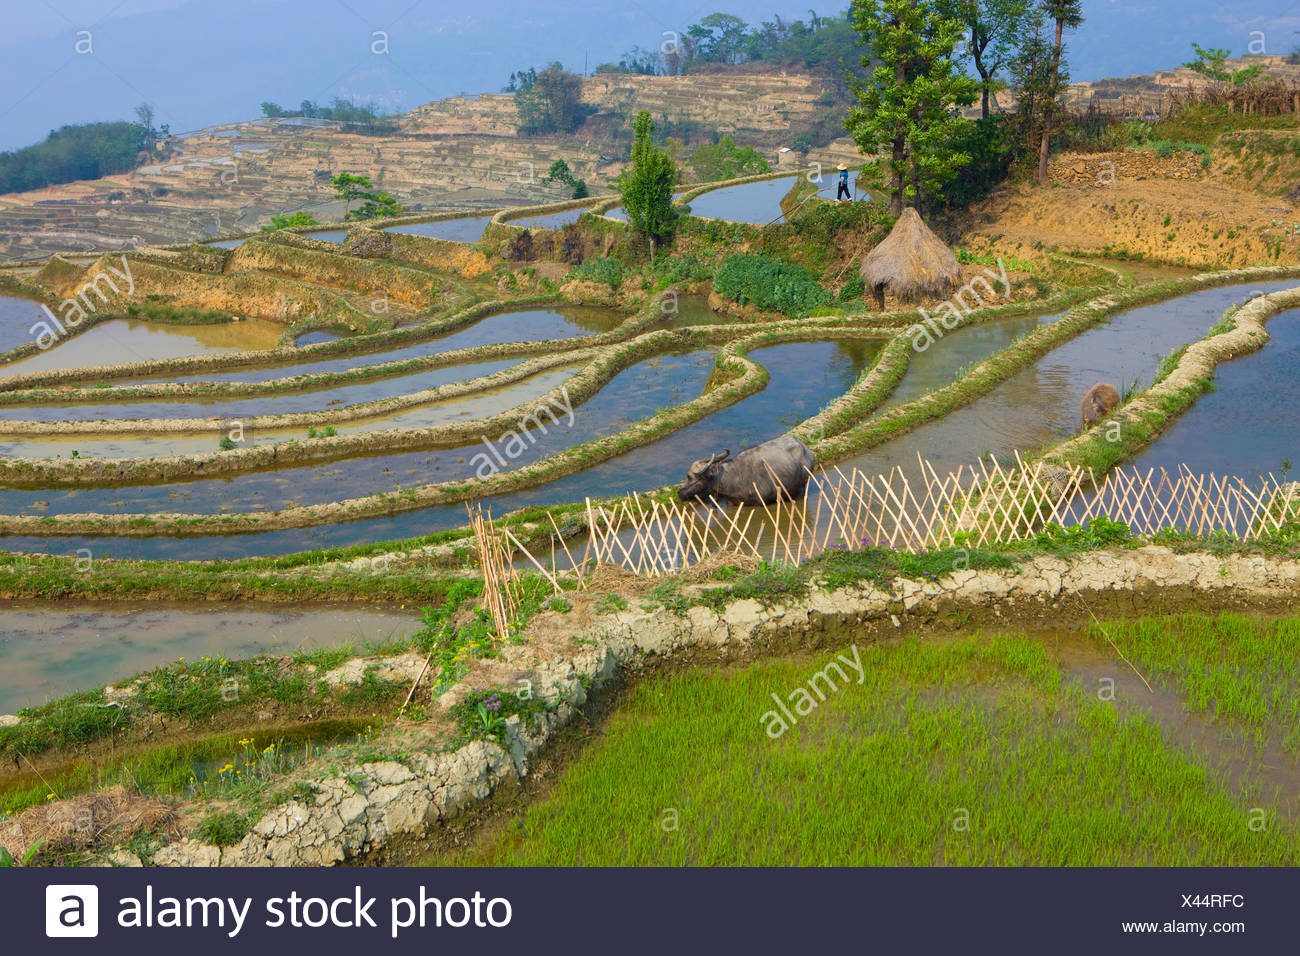 Yuanyang, China, Asia, rice terraces, growing of rice, rice fields, agriculture, water, trees, spring, water buffalo - Stock Image